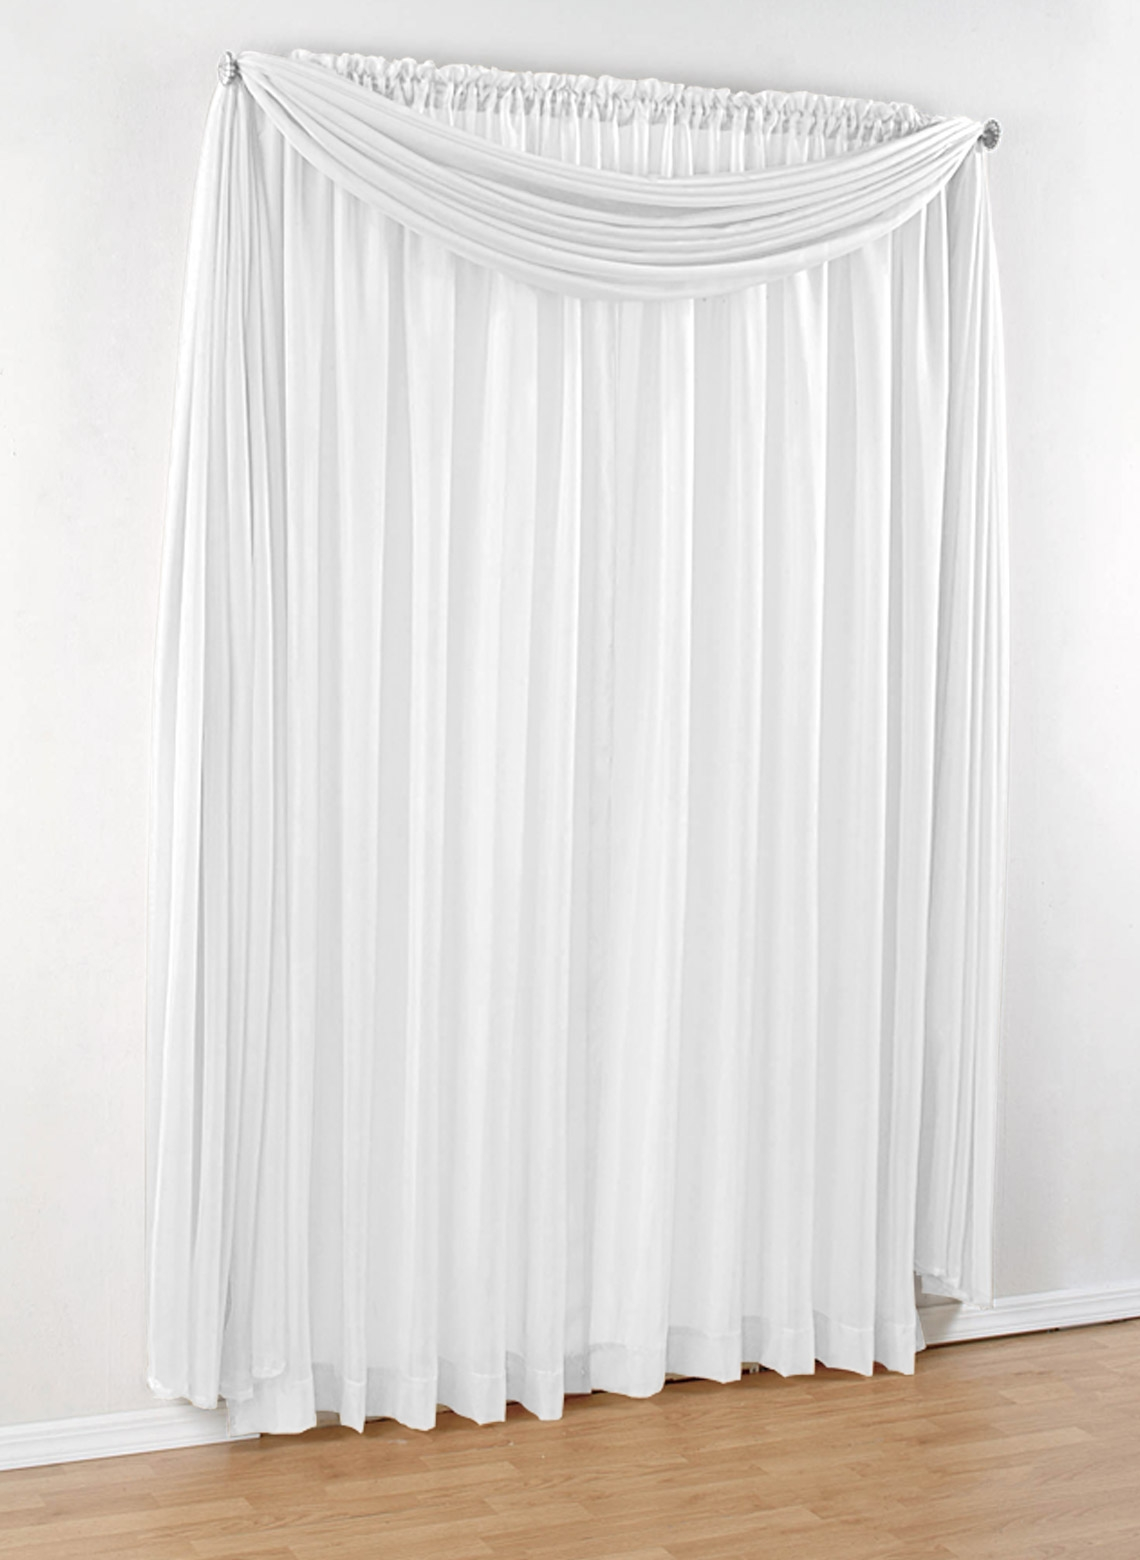 Sheer Curtains Carolwrightgifts Intended For Curtains Sheers (Image 18 of 25)